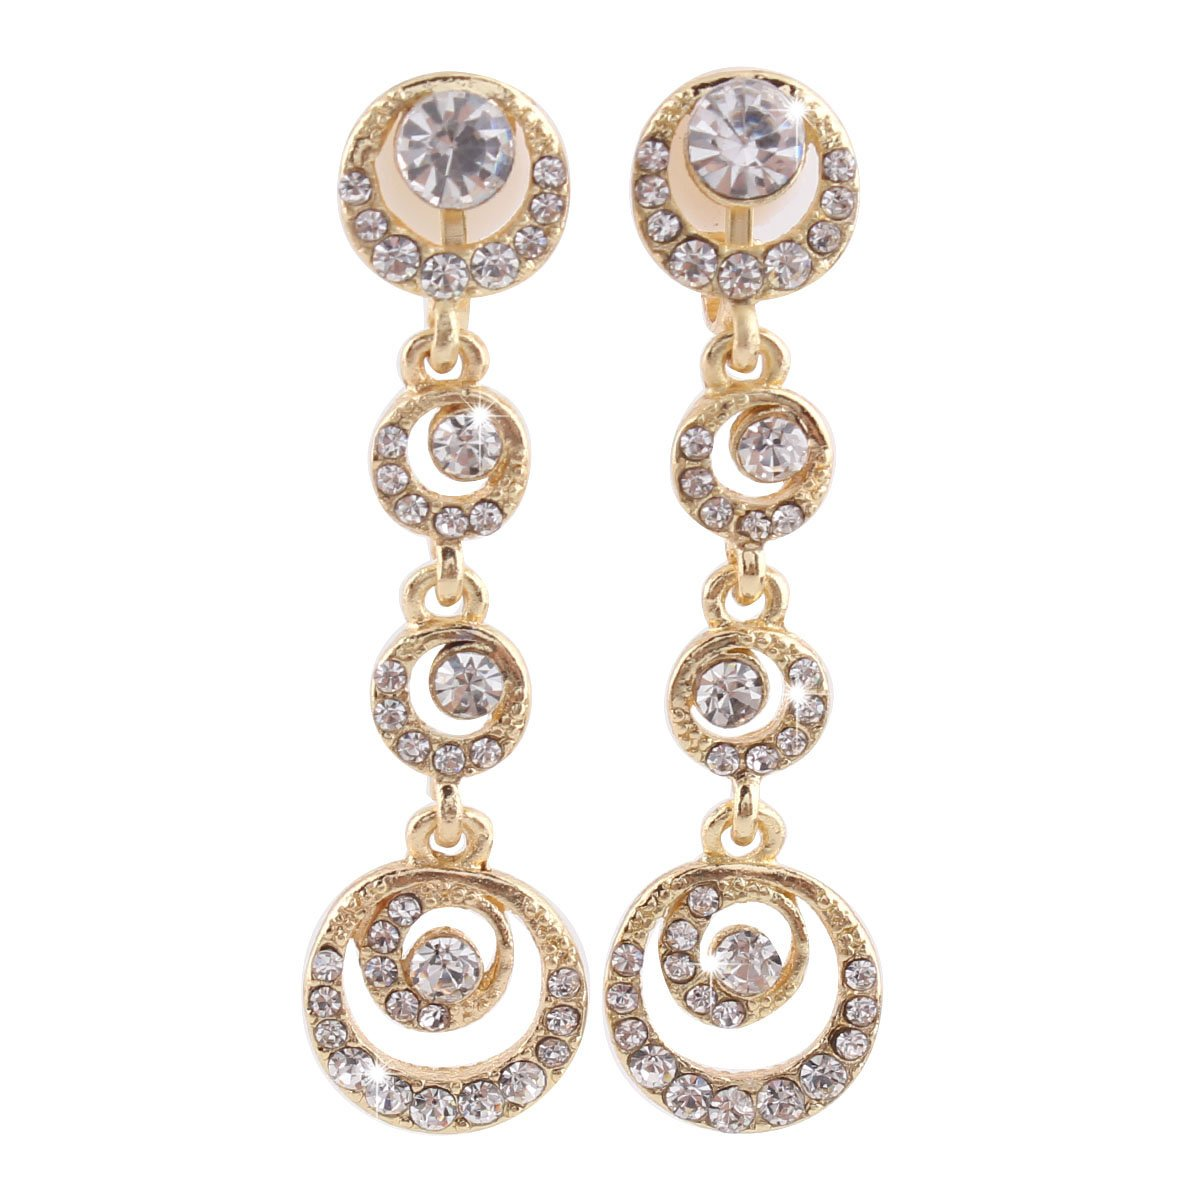 Grace Jun Luxury Bridal Alloy Rhinestone Moon Shape Clip on Earrings No Pierced for Women